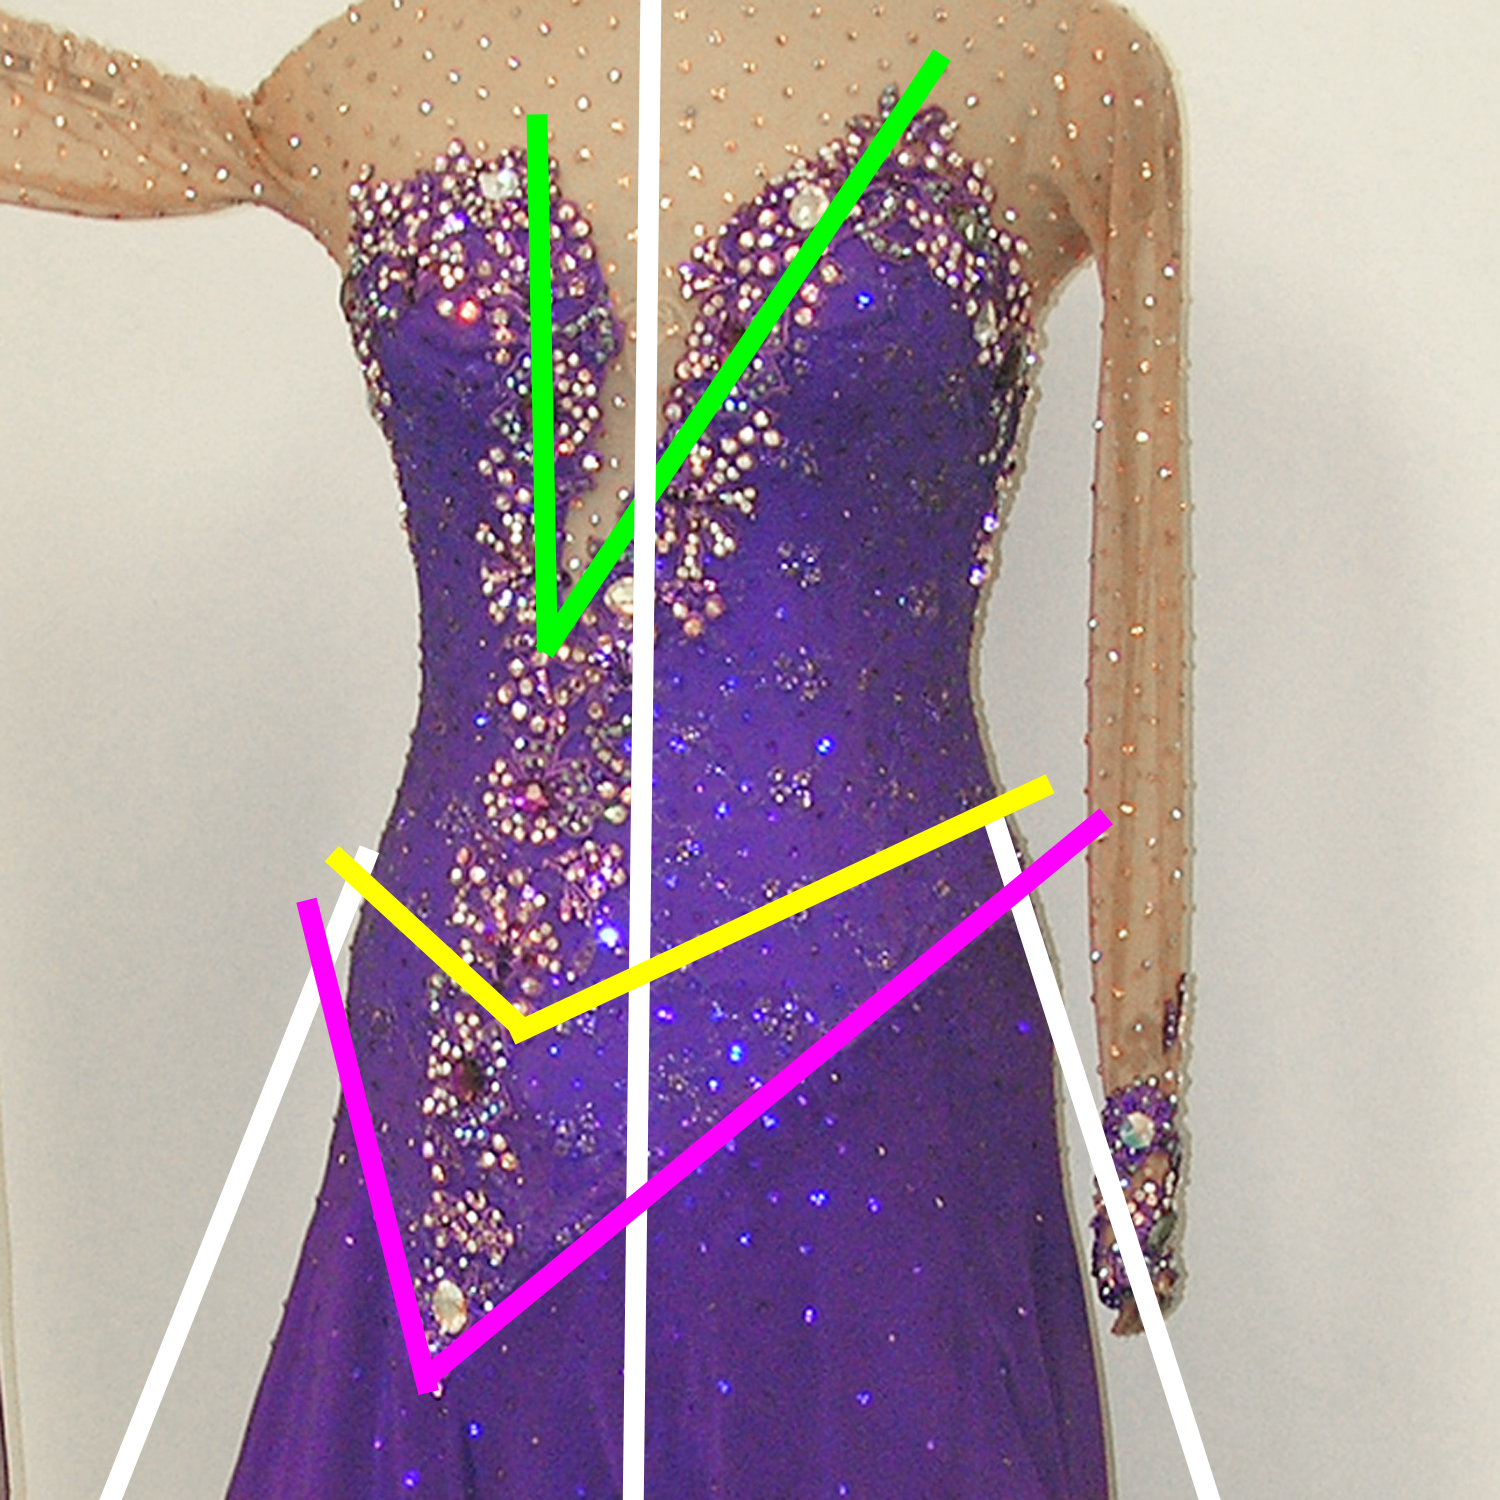 design dresses for competition Dancesport, ballroom, Latin, Country and skate dresses